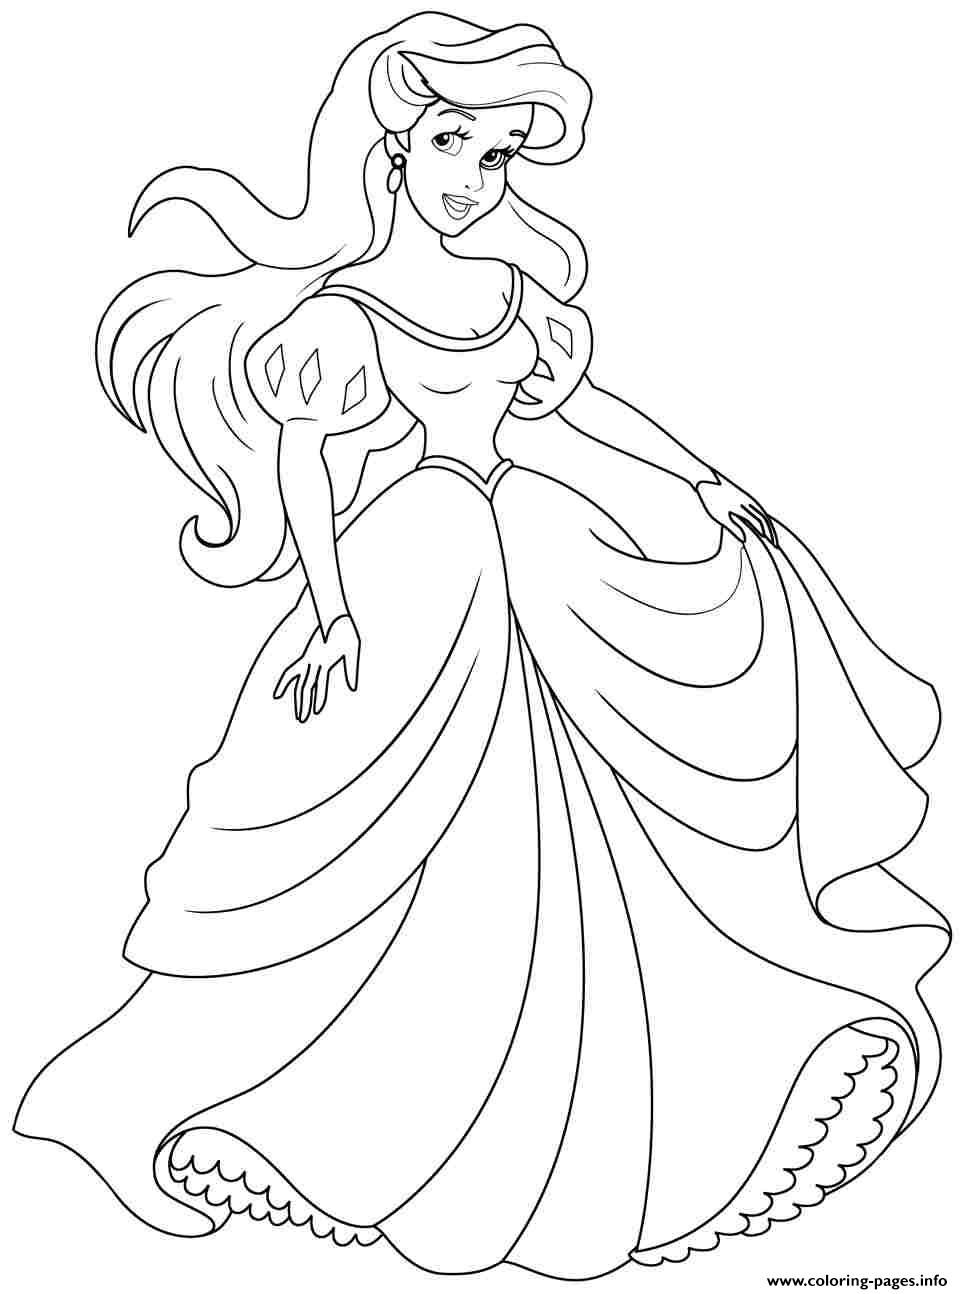 Free color pages princess - Princess Ariel Human Coloring Pages Printable And Coloring Book To Print For Free Find More Coloring Pages Online For Kids And Adults Of Princess Ariel